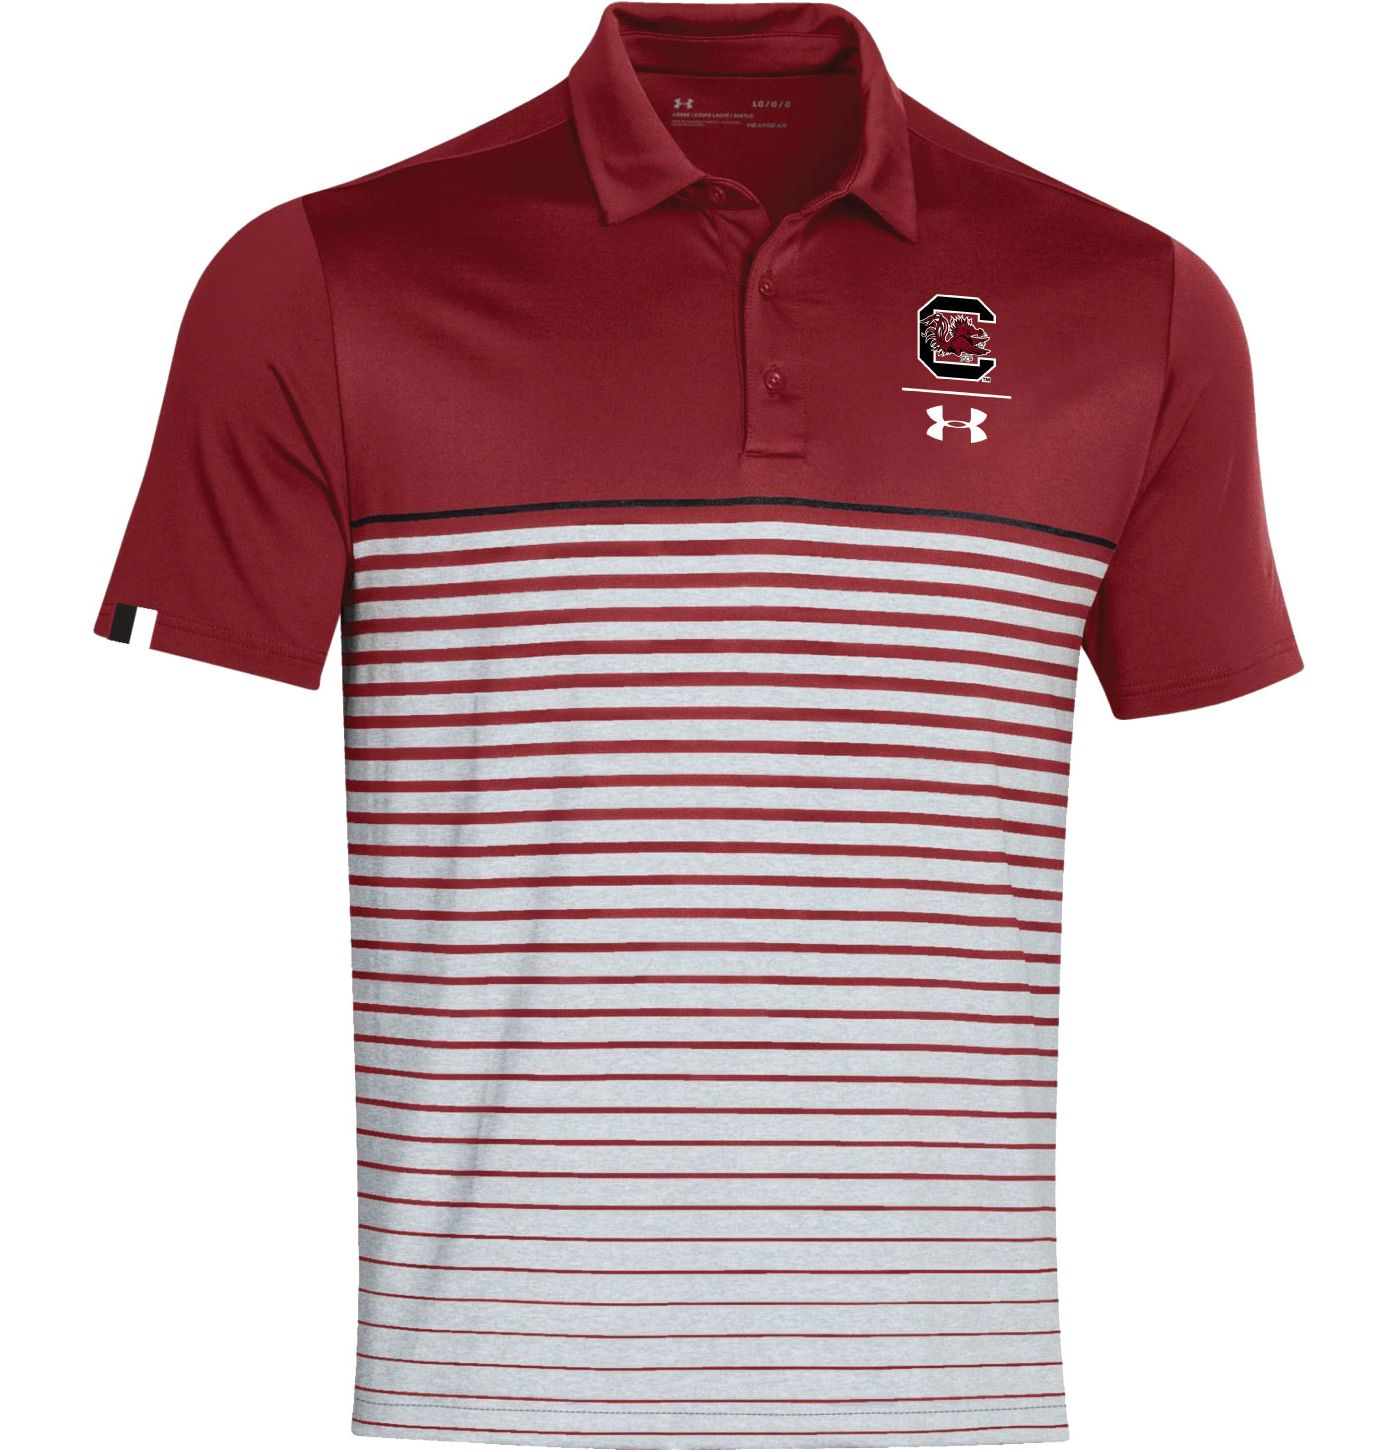 Under Armour Men's South Carolina Gamecocks Garnet Pinnacle Performance Sideline Polo